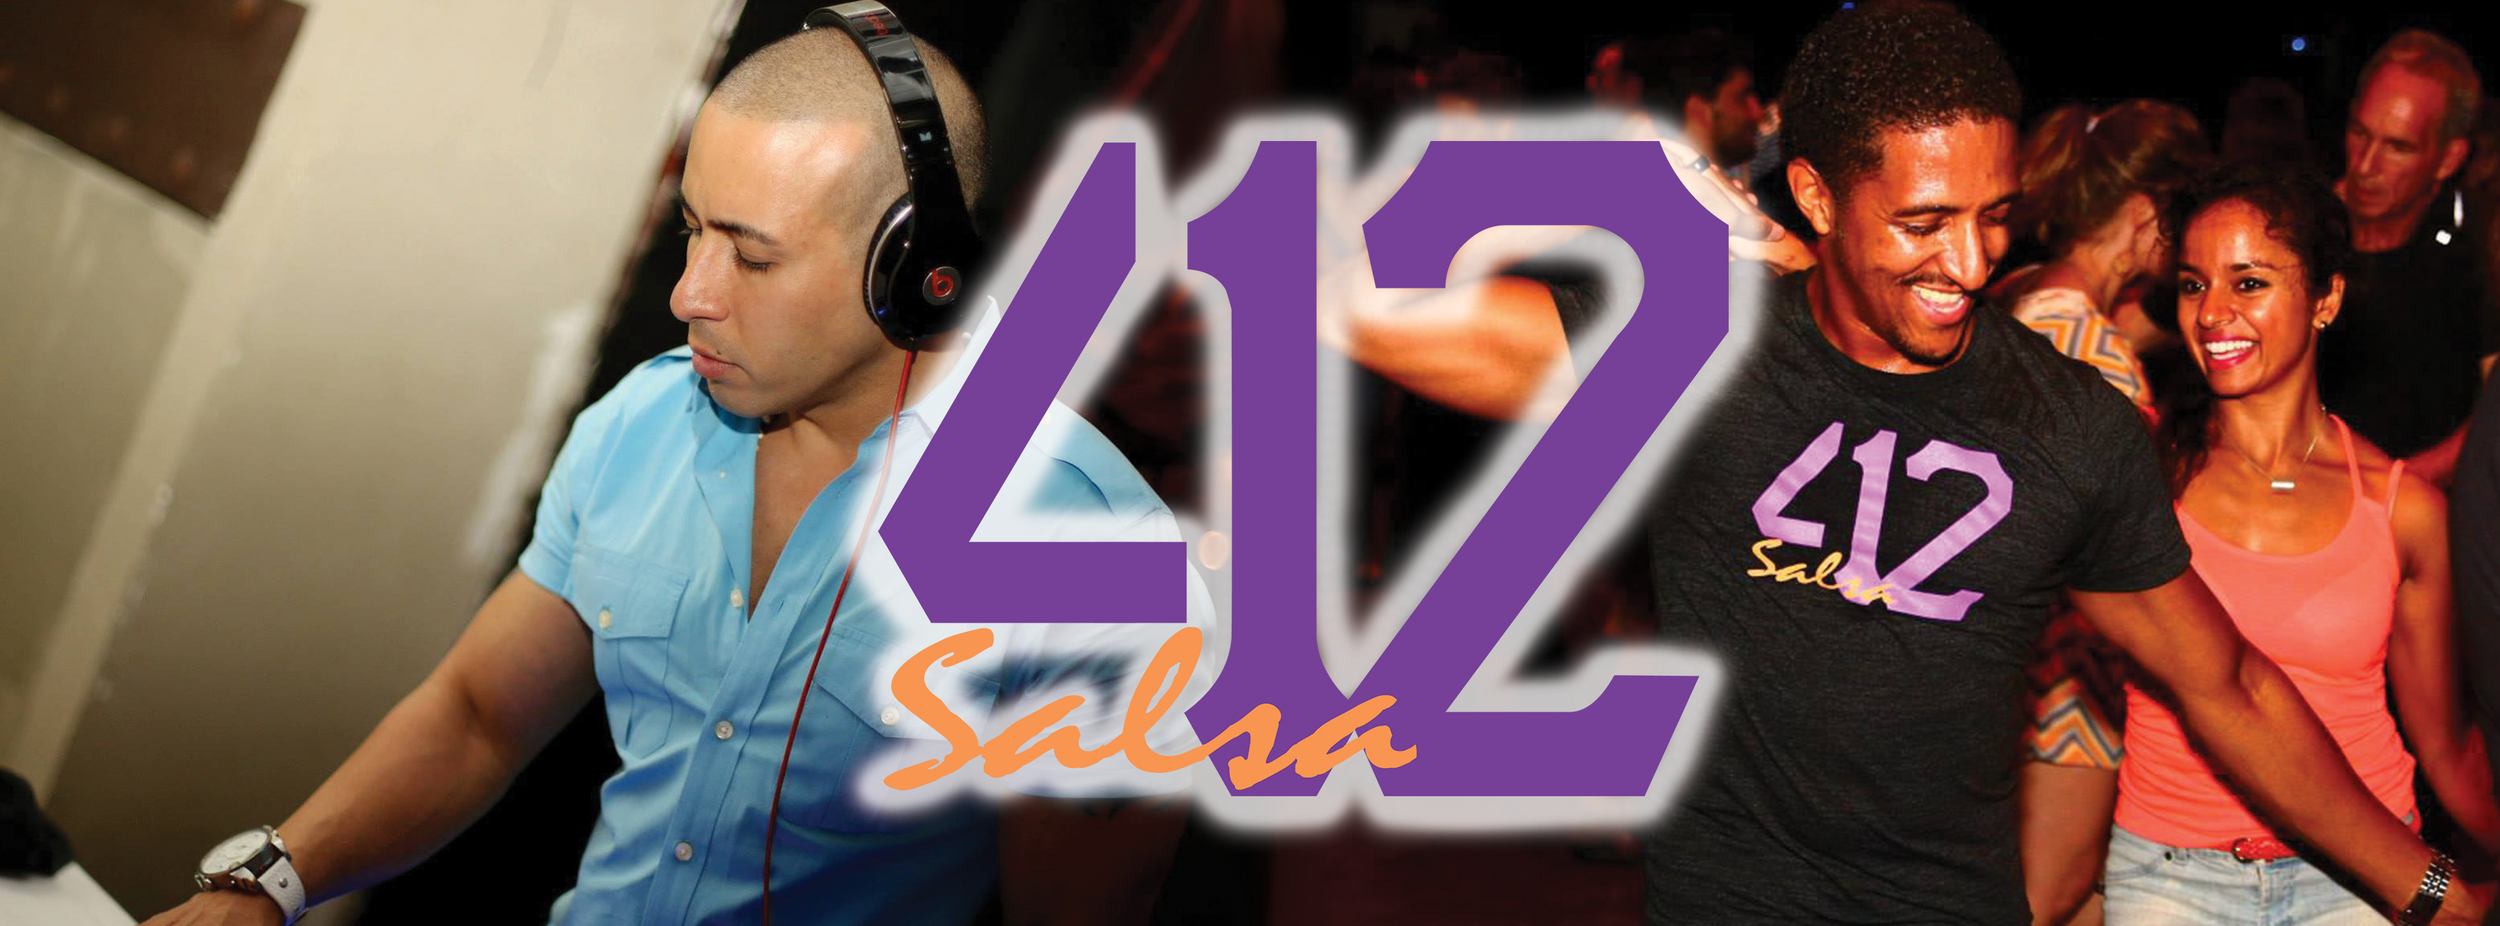 salsa412-facebook-cover.png